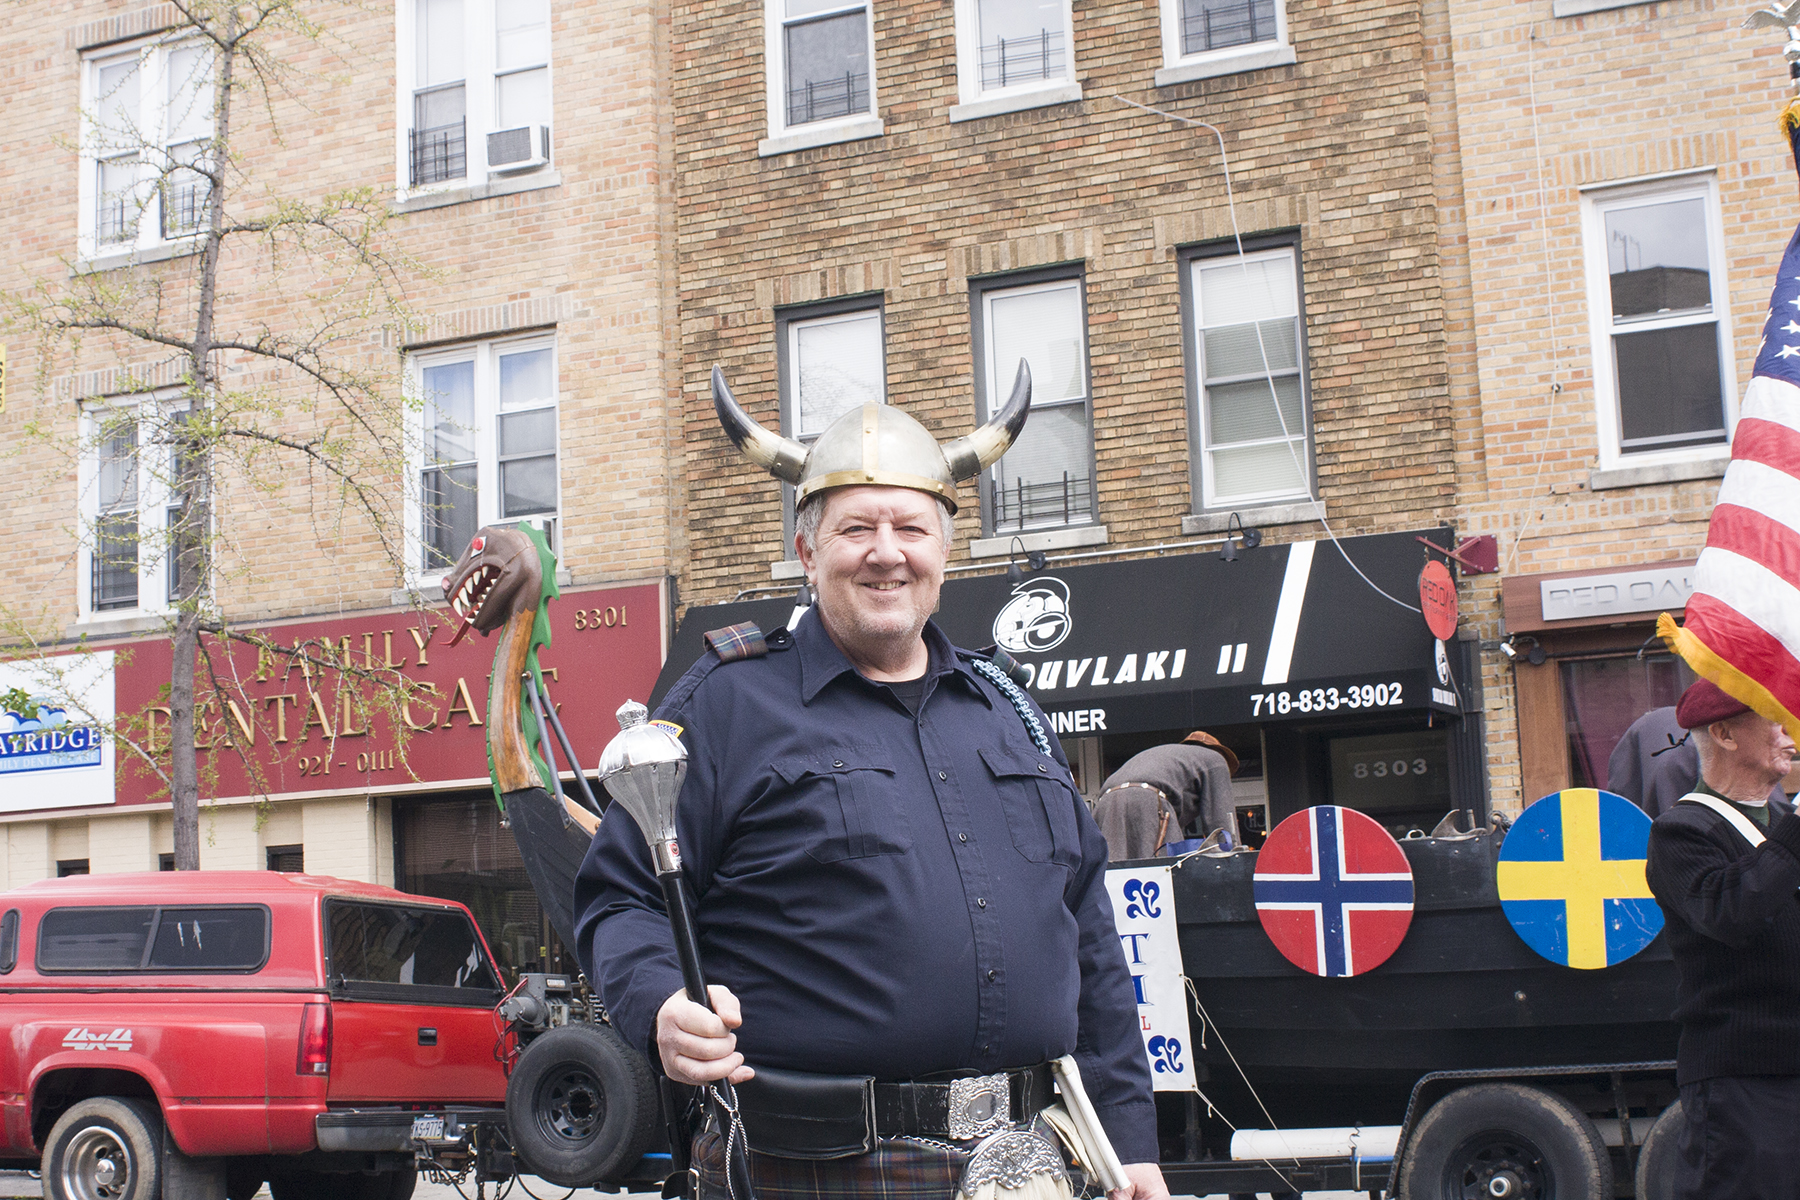 A local Viking poses in front of his ship before the parade begins.